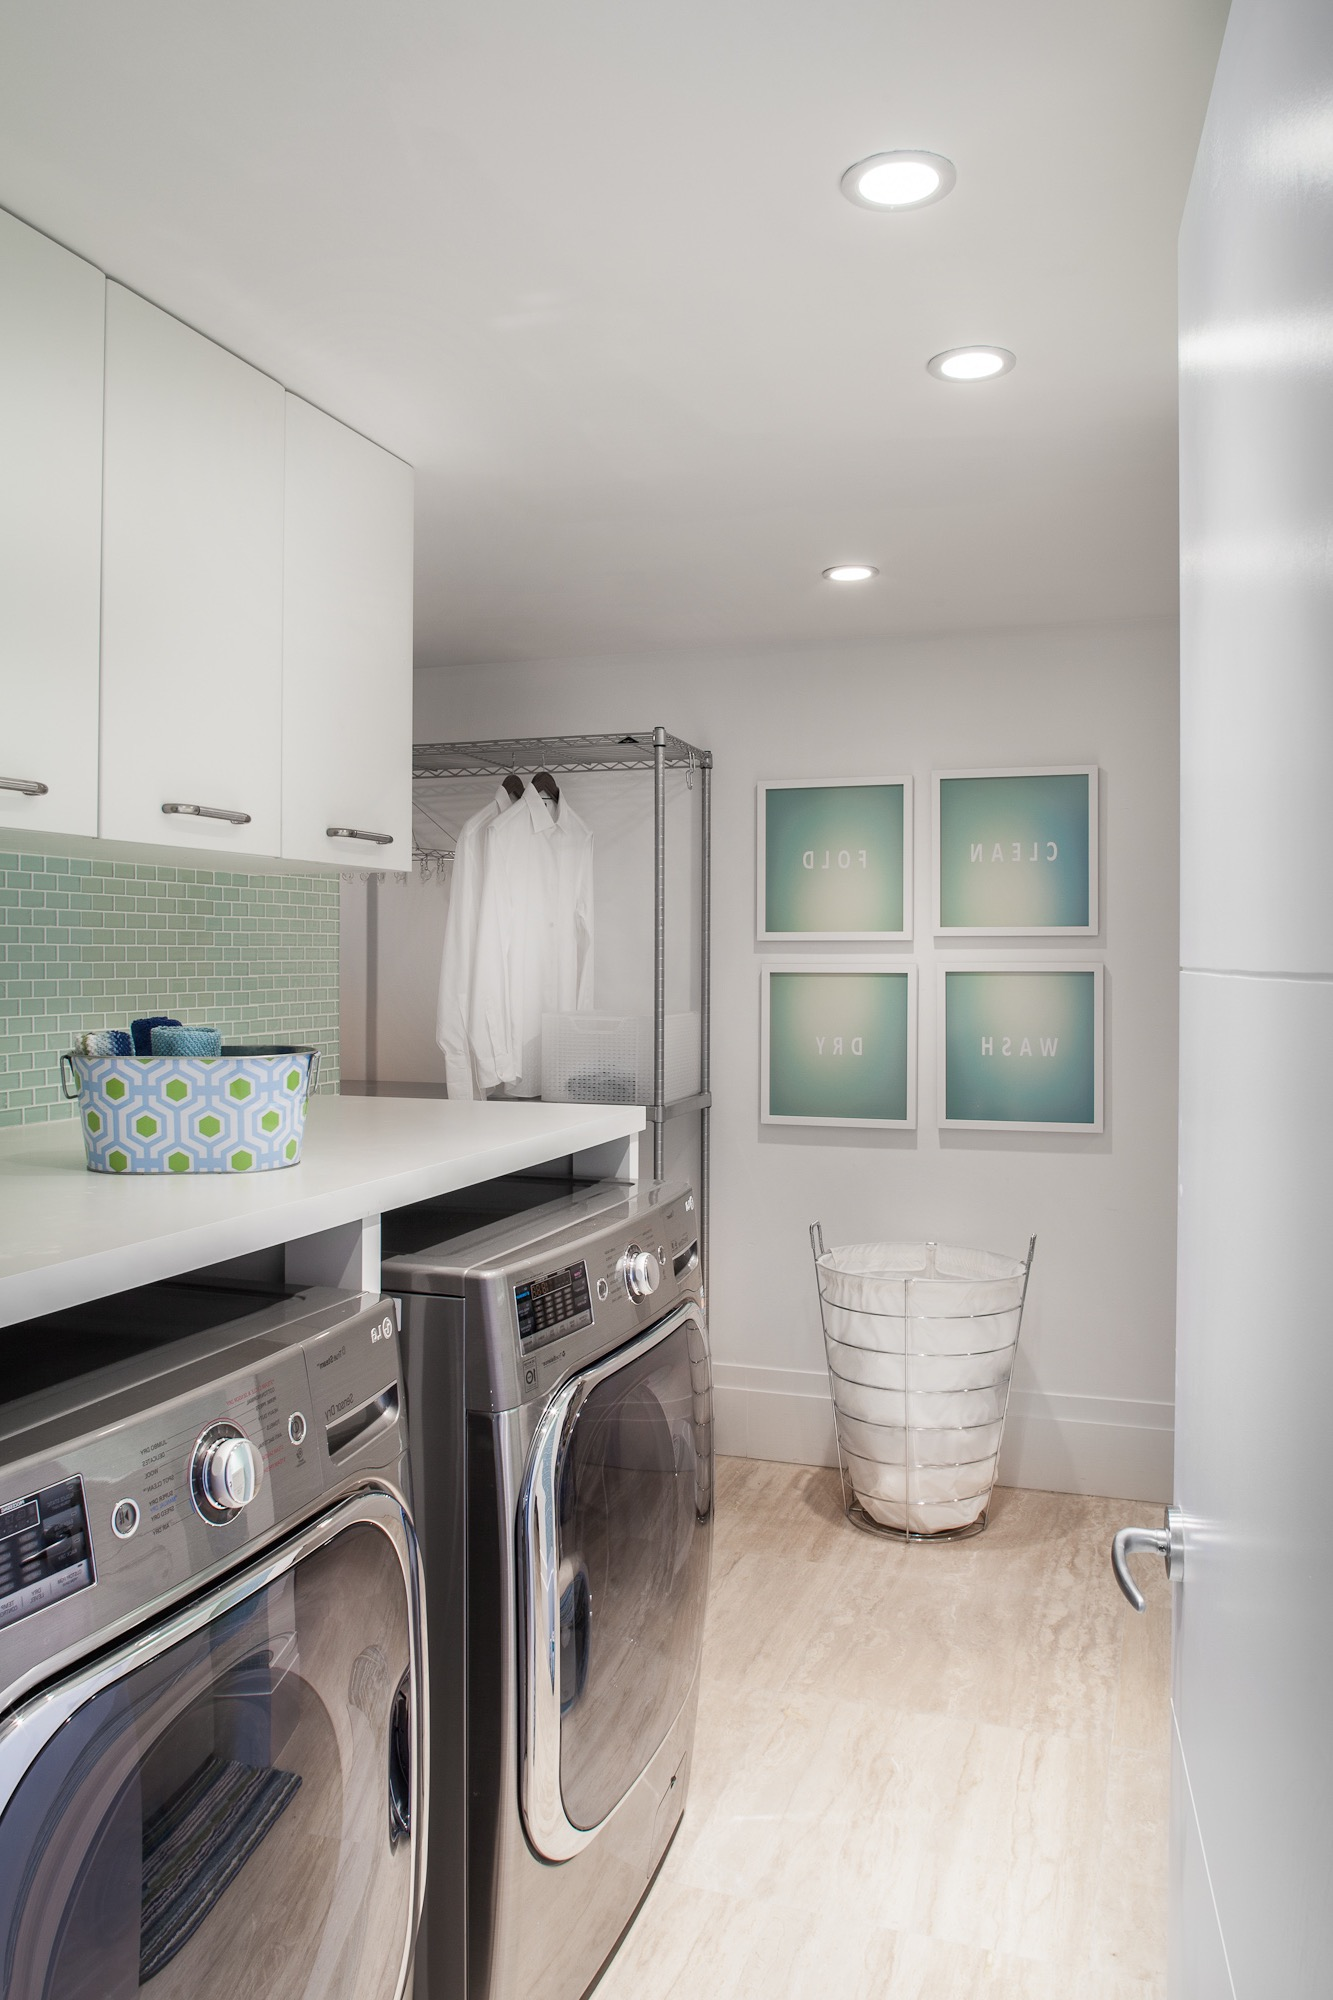 Cozy White Laundry Room With Tile Backsplash (Image 8 of 26)